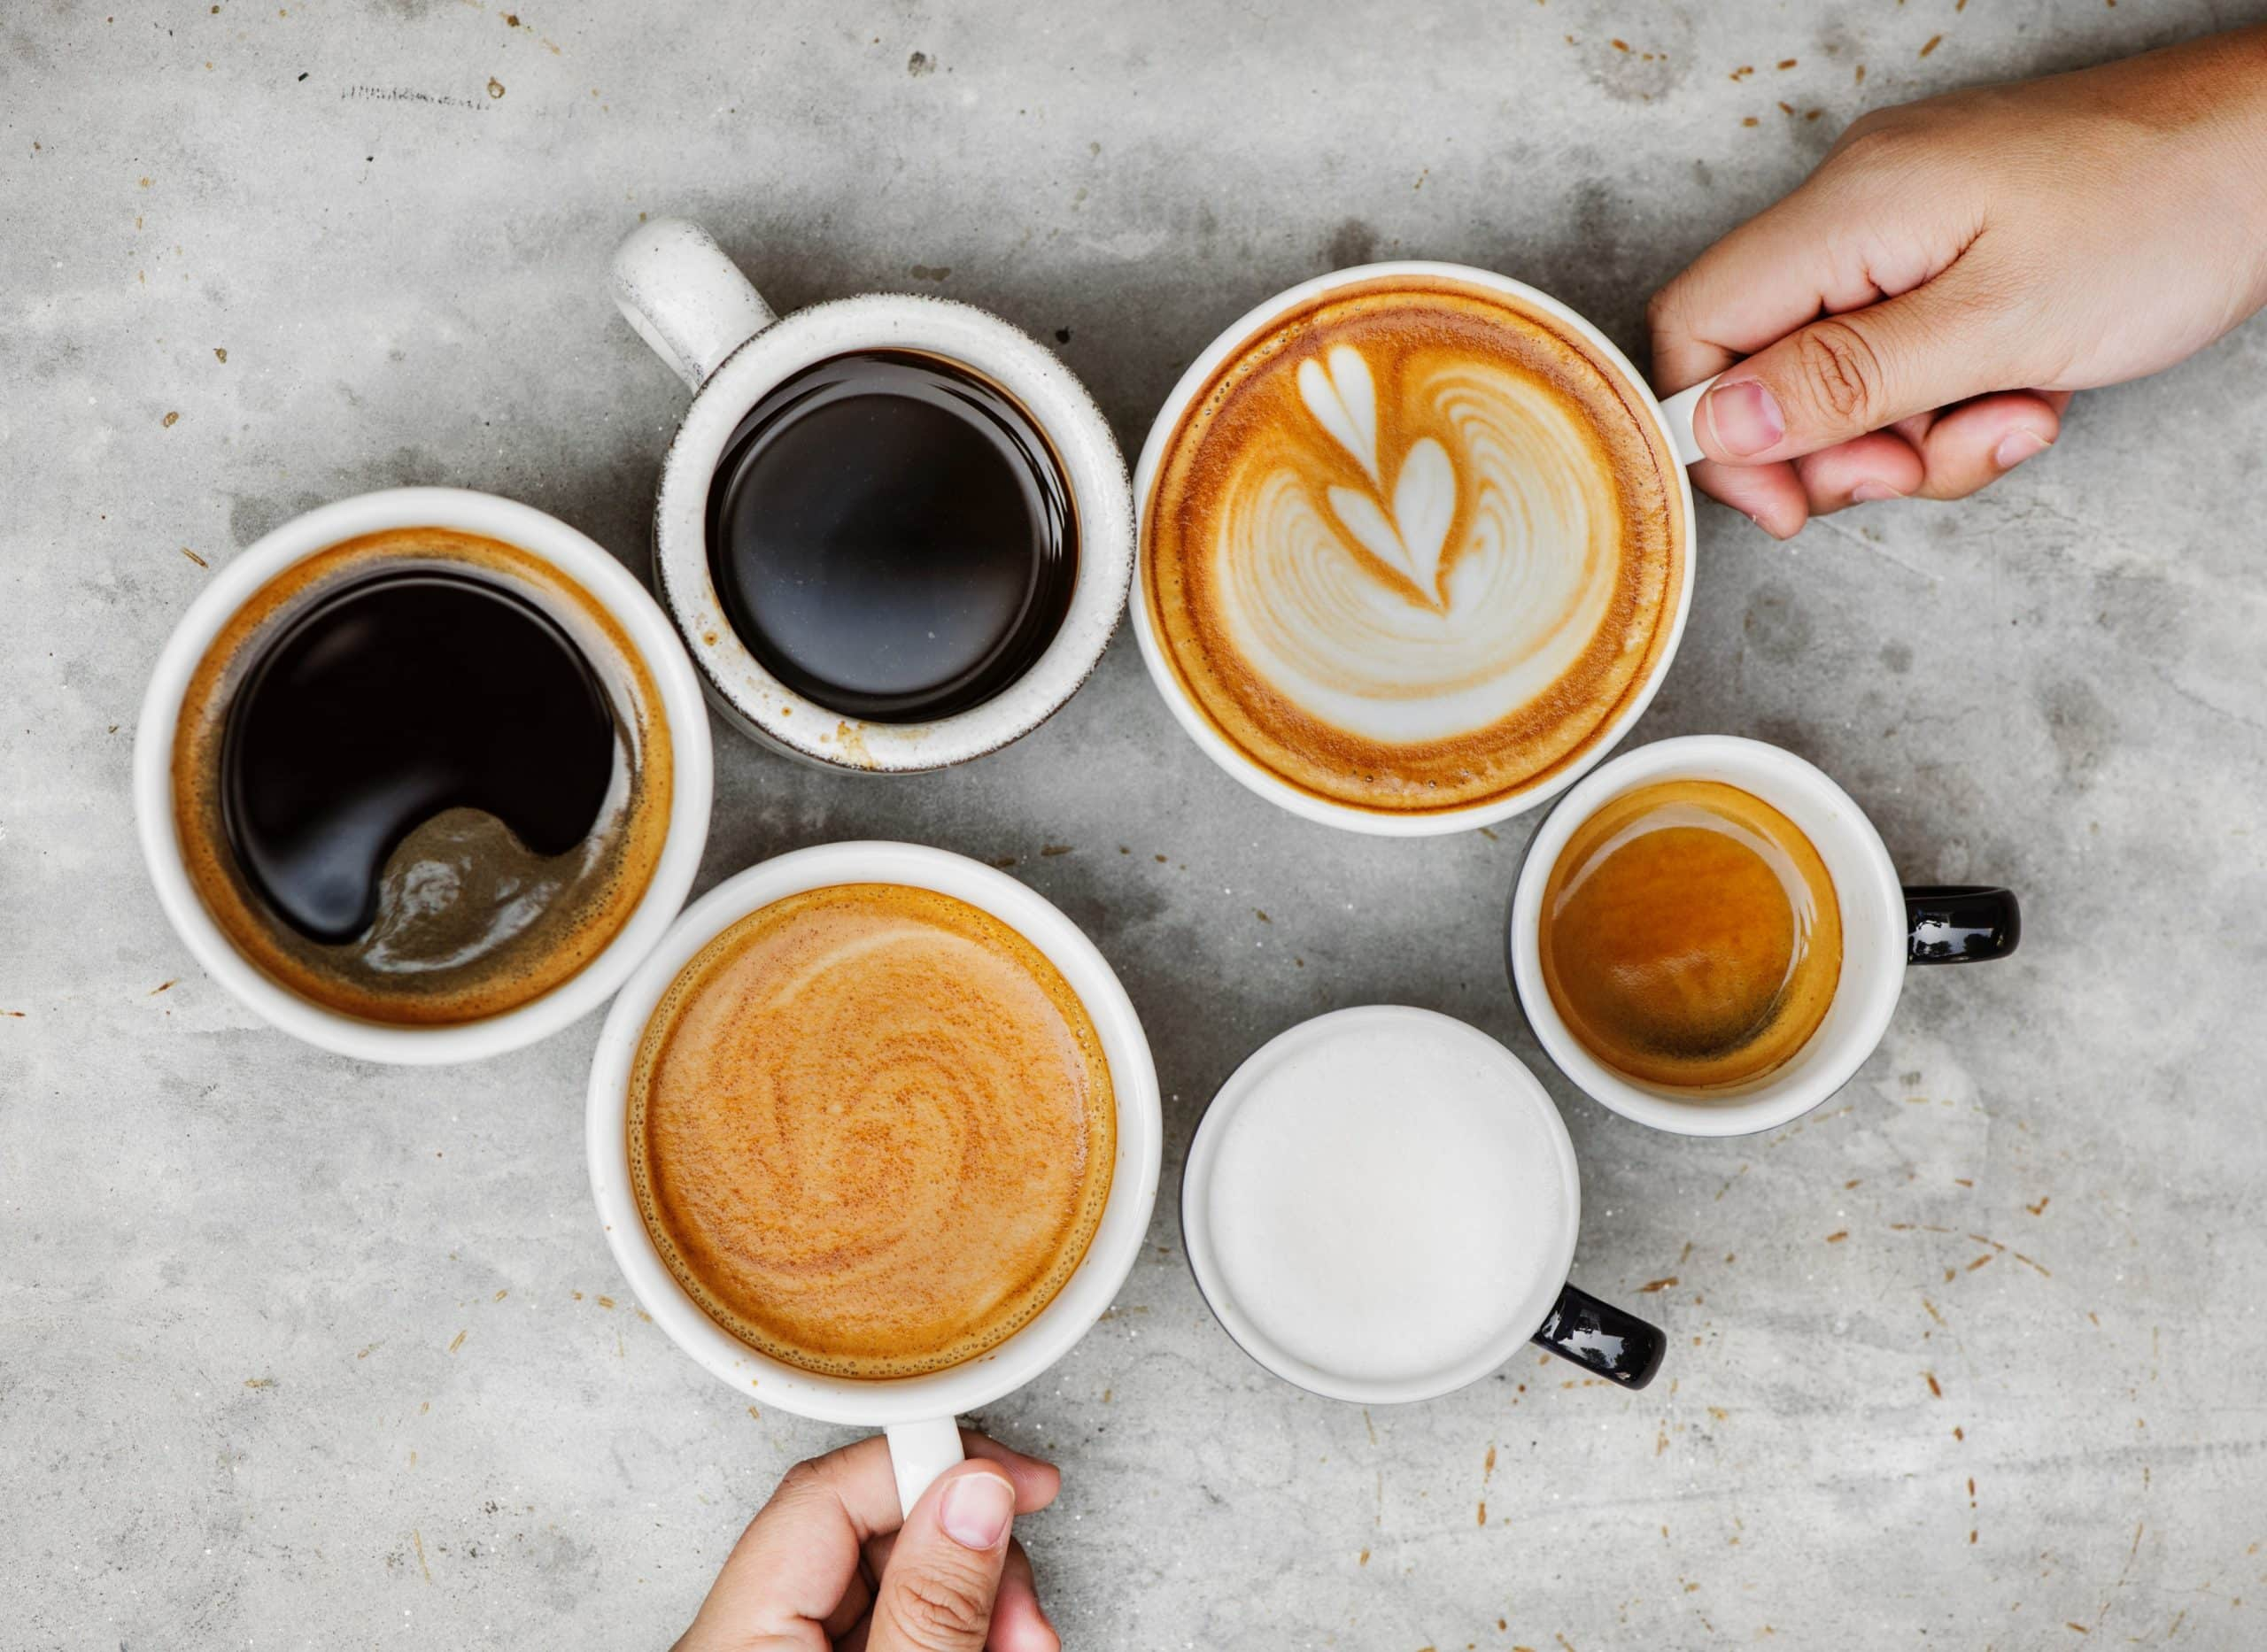 six cups of delicious coffee, espressos, teas, and lattes in white mugs